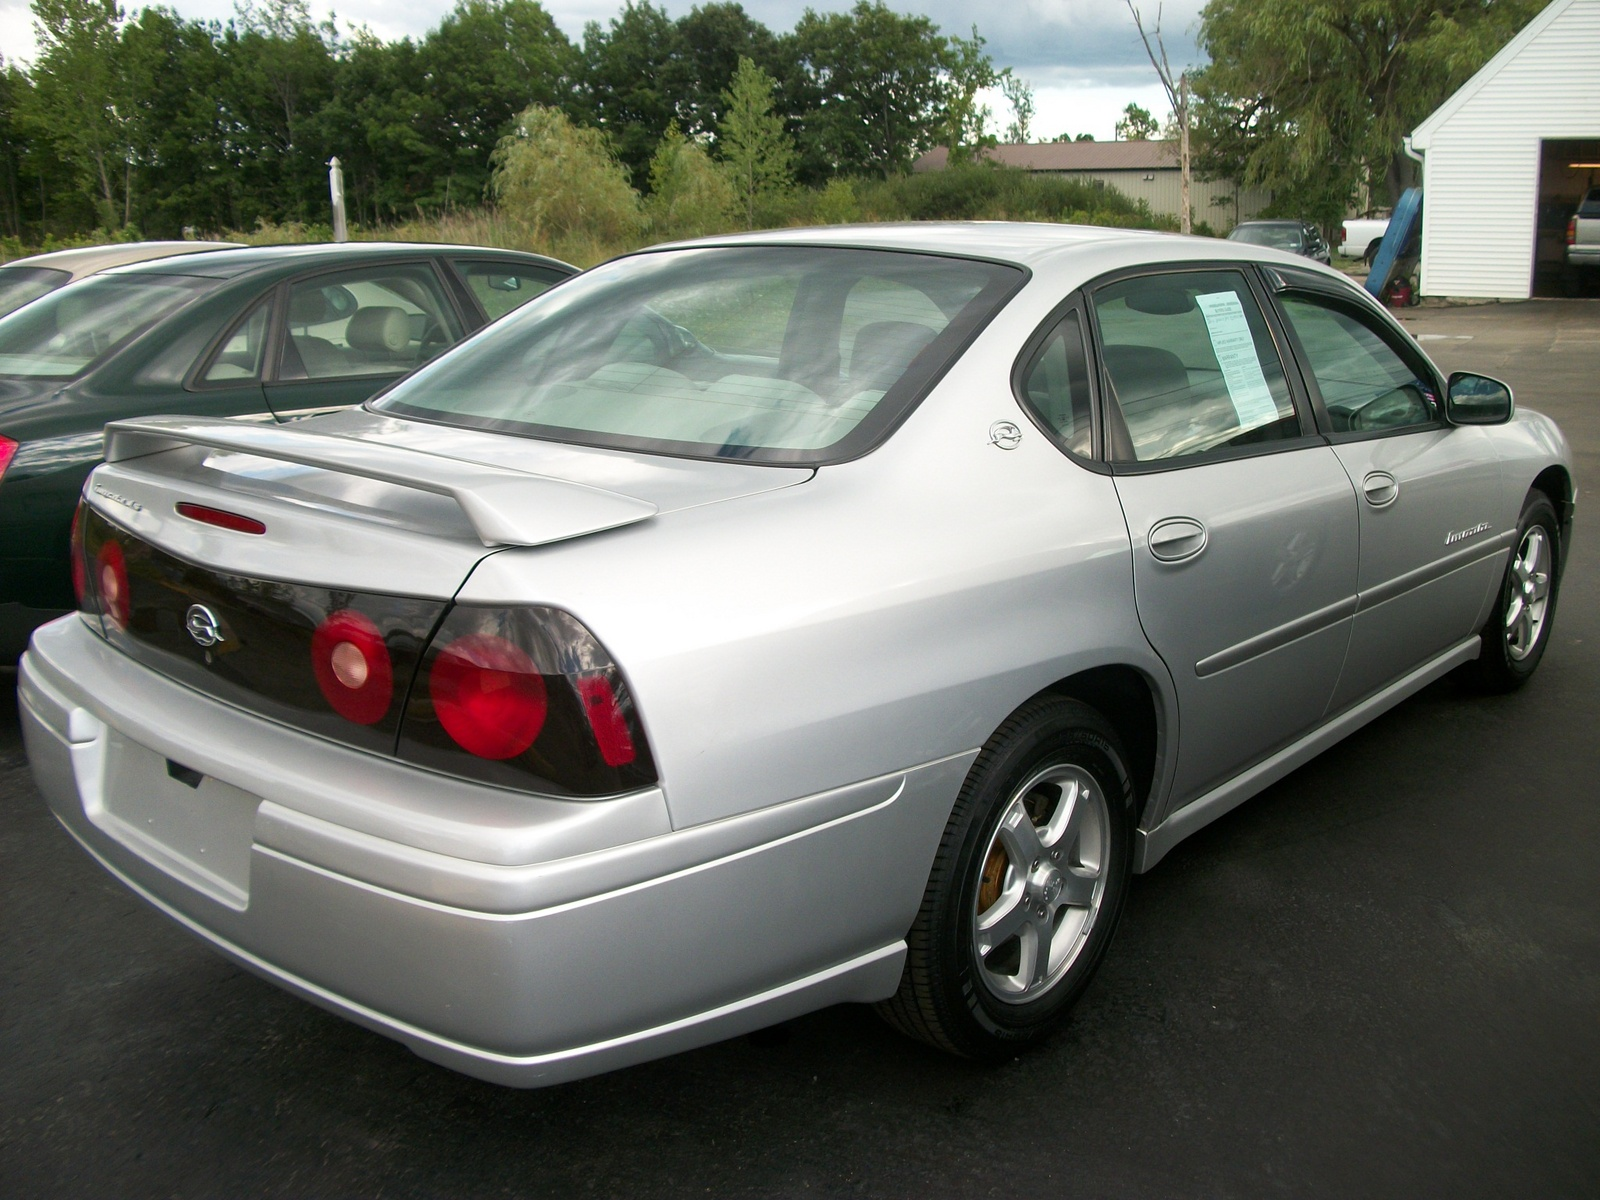 2004 chevrolet impala exterior pictures cargurus. Cars Review. Best American Auto & Cars Review